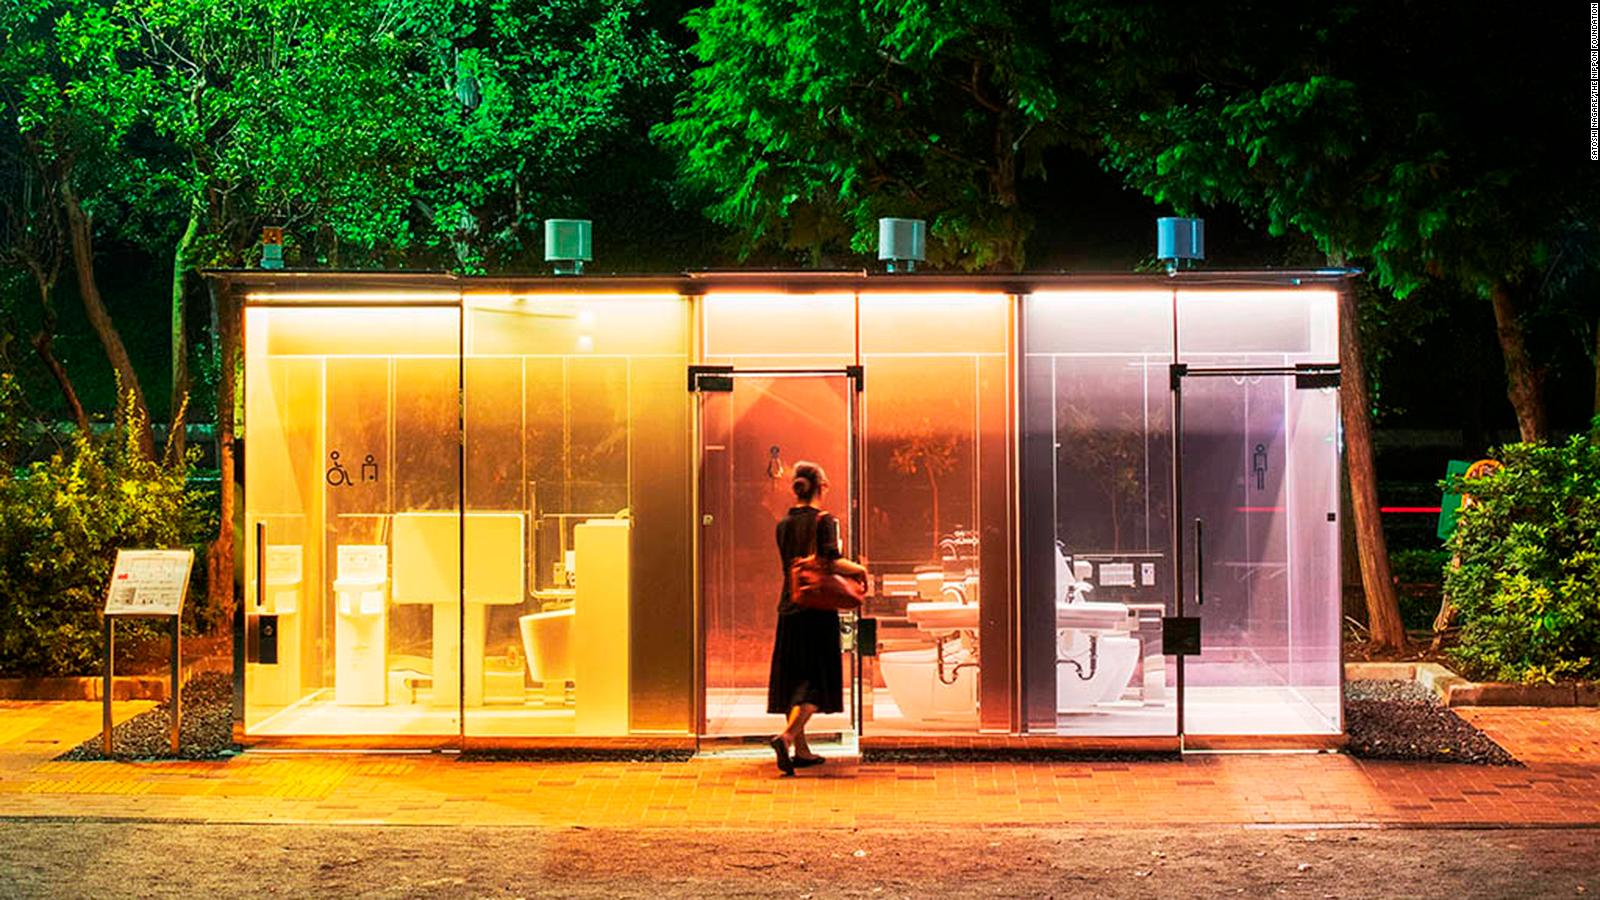 Tokyo S Latest Attraction Transparent Public Toilets Cnn Travel